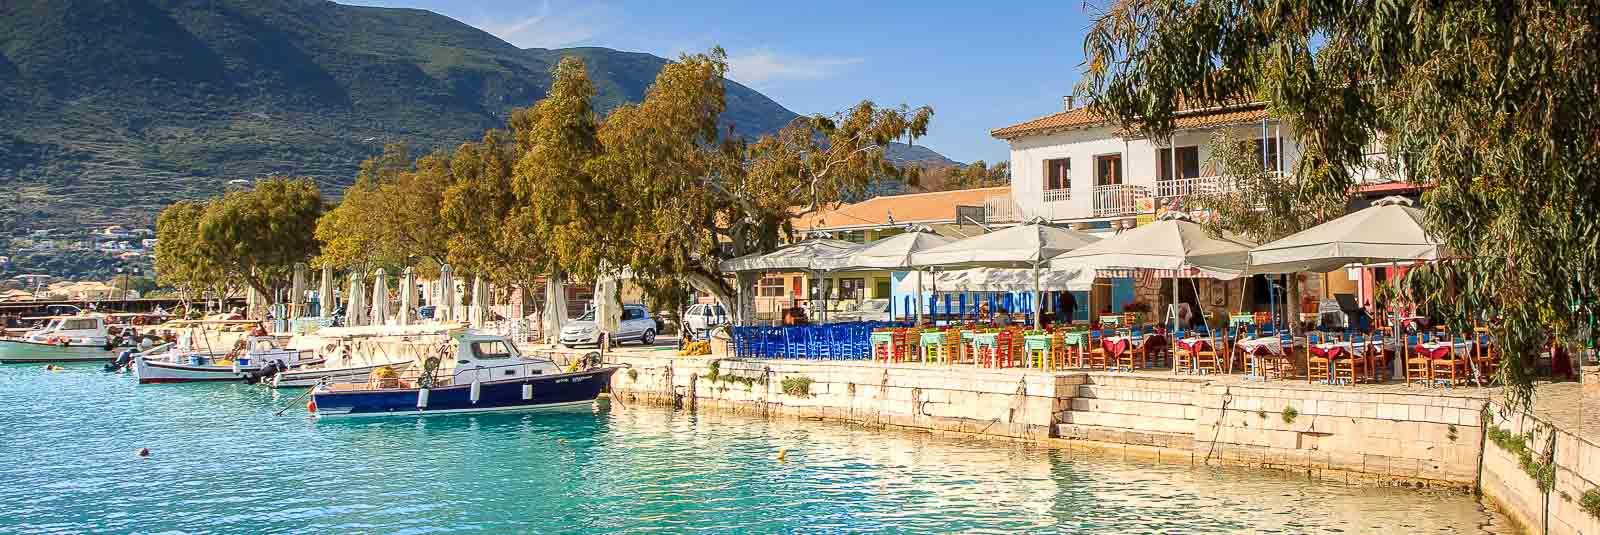 News and Infos from Vasiliki and its island Lefkada